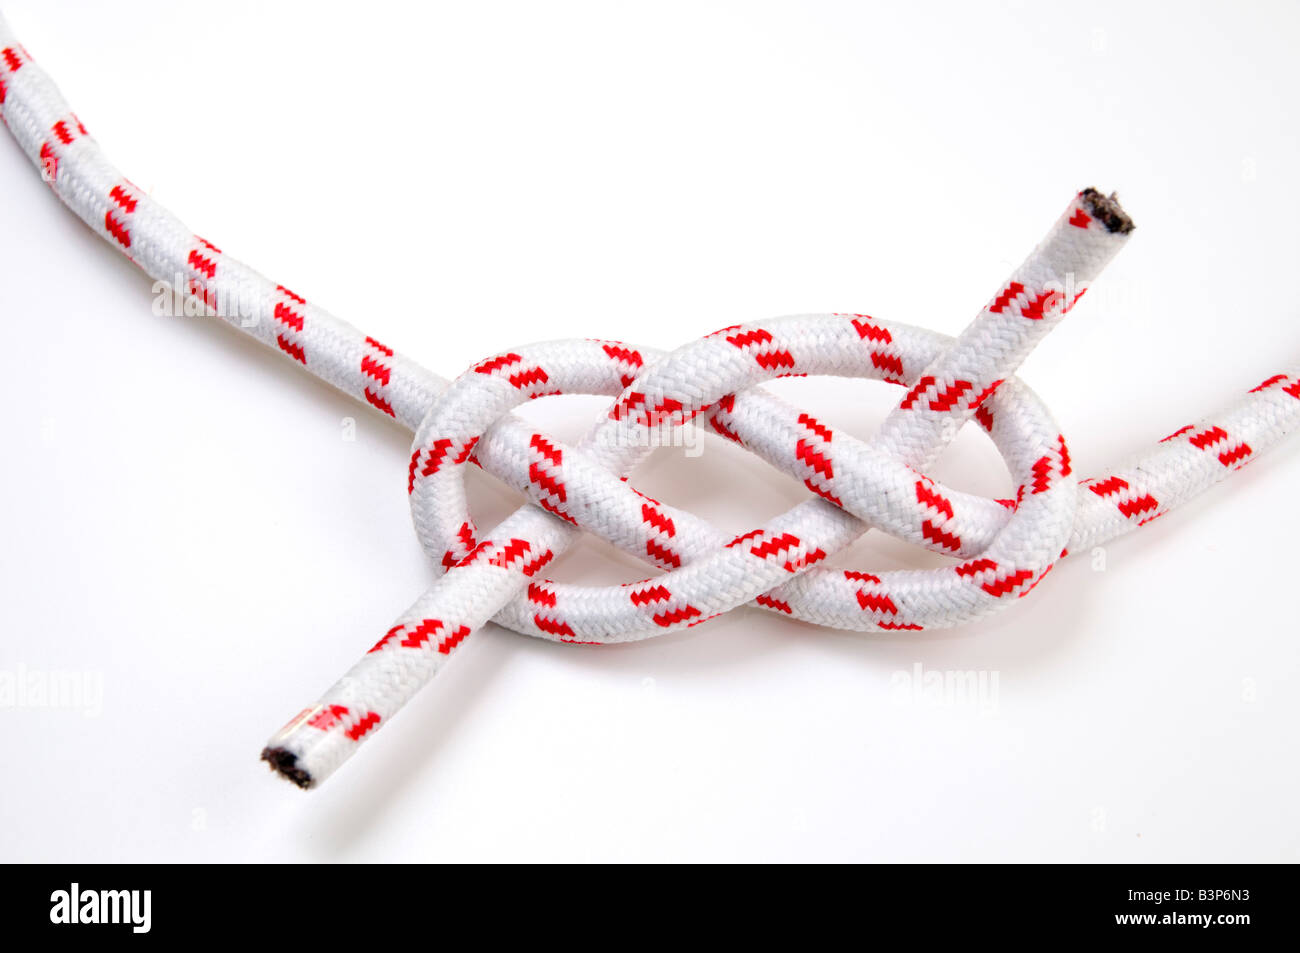 The Carrick Bend or The Josephine Knot AKA Sailor s Knot and Anchor Bend on white background - Stock Image